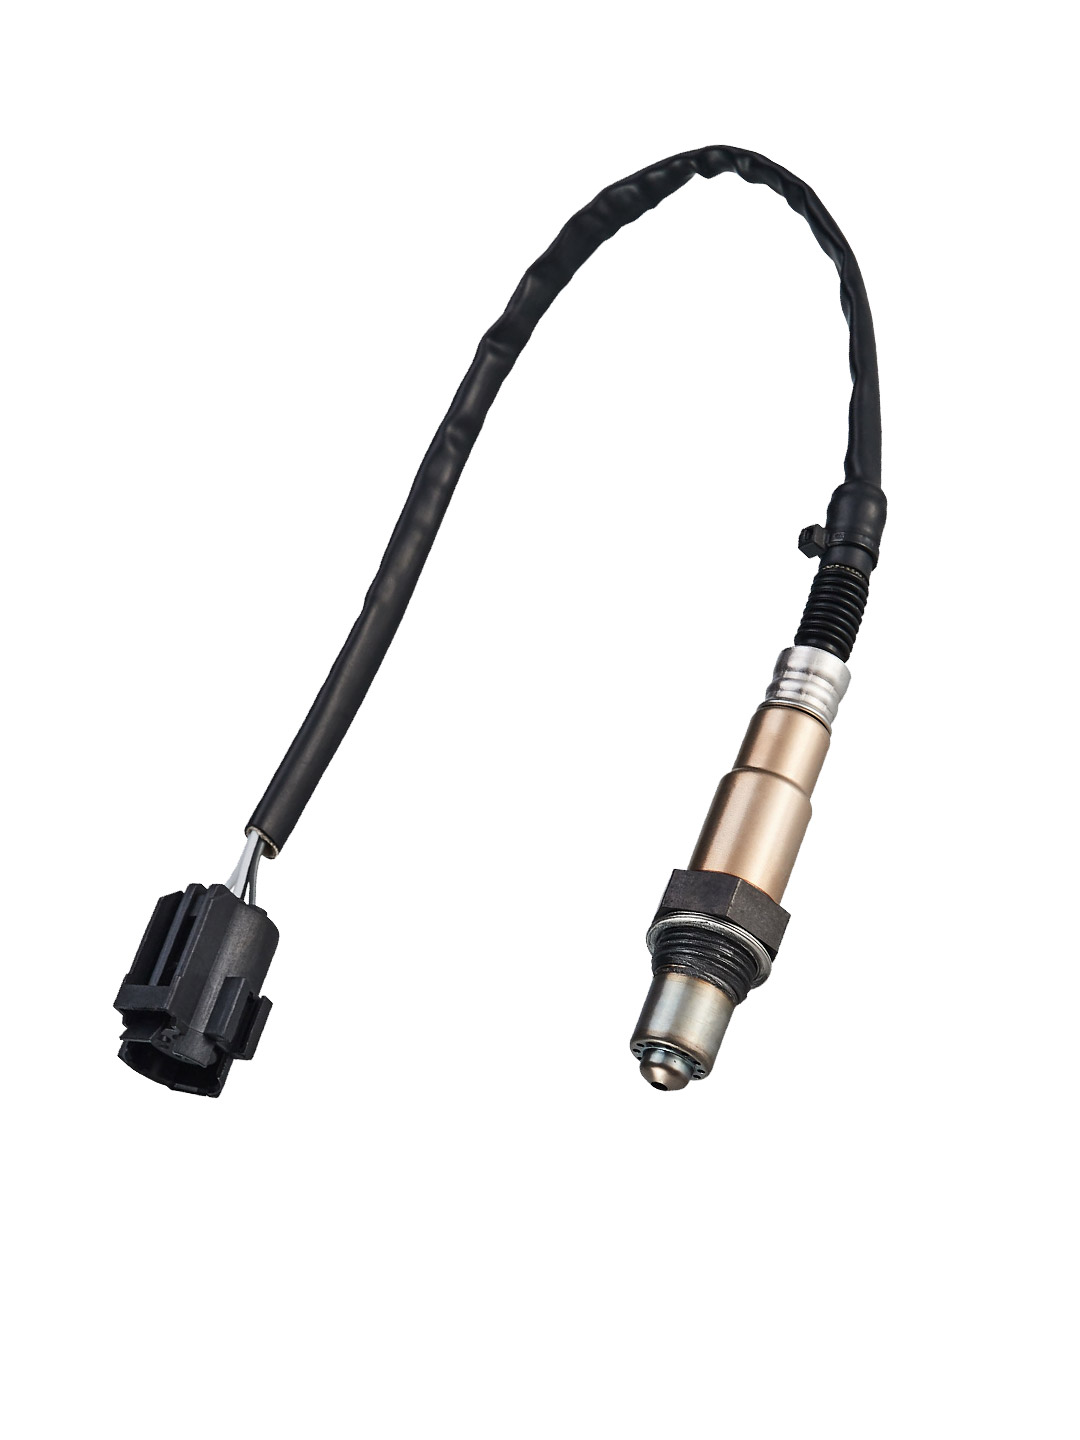 Isa Oxygen Sensor Compatible With Dodge Intrepid